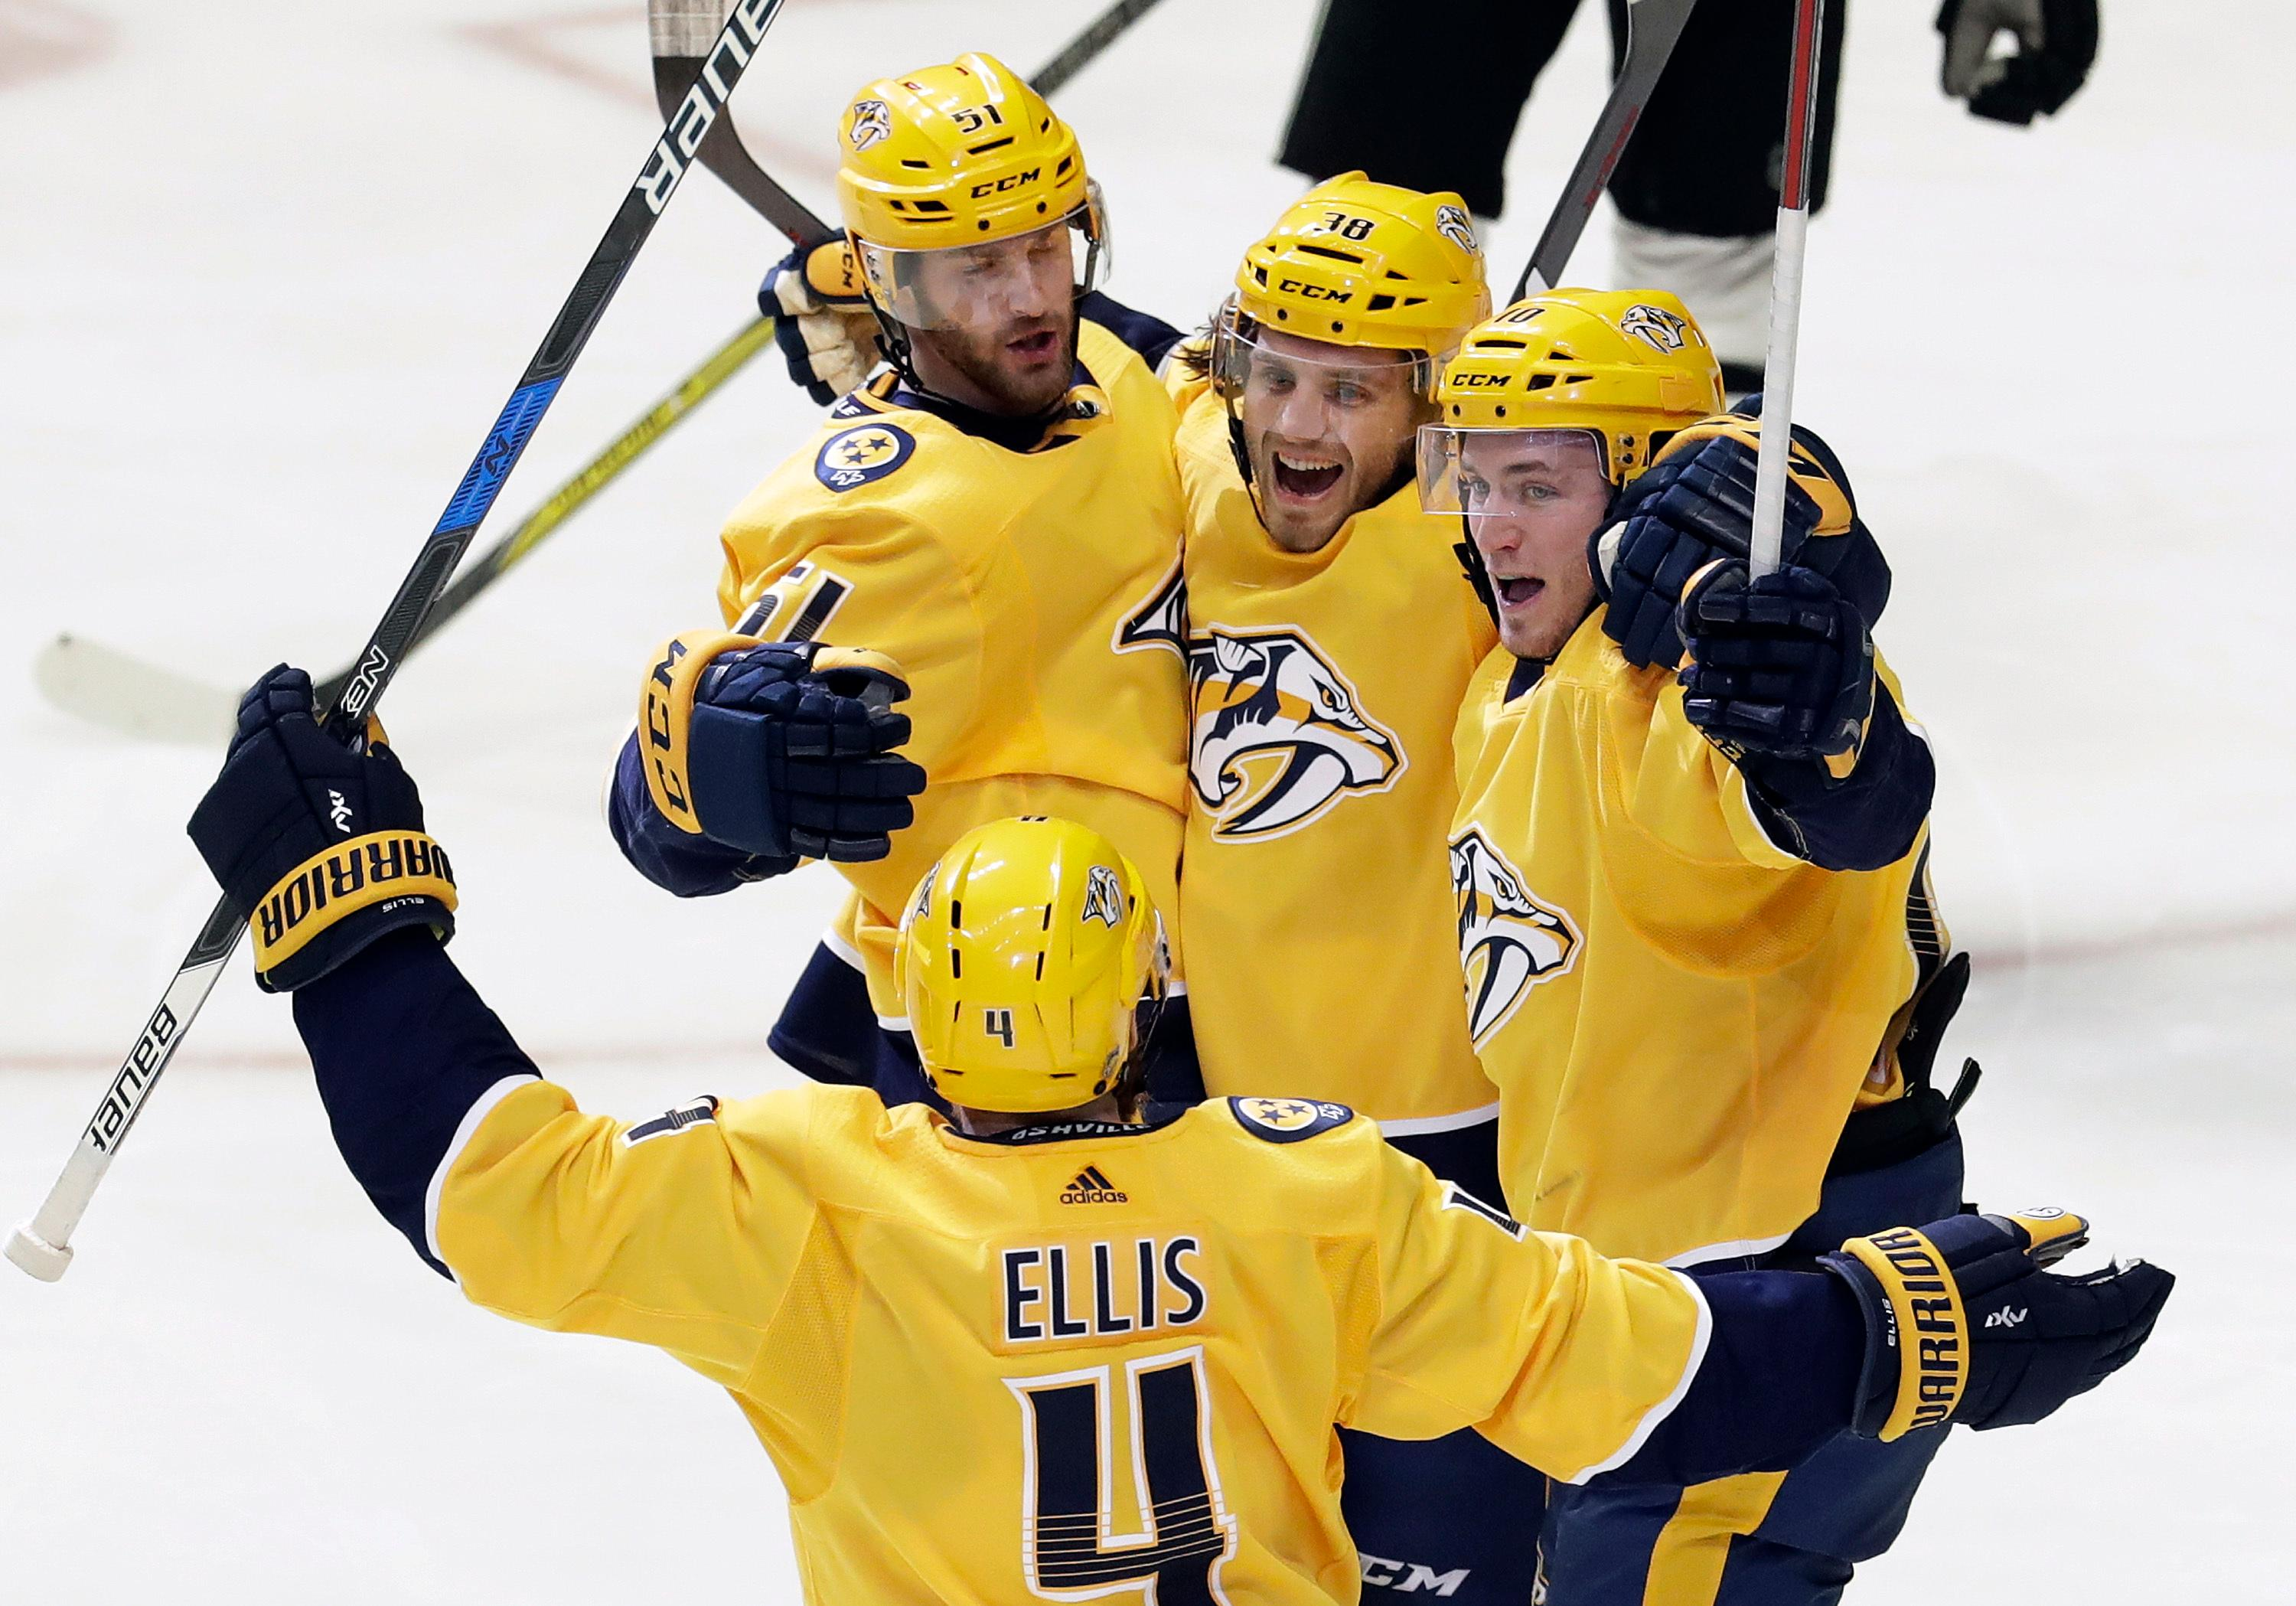 Nashville Predators right wing Ryan Hartman (38) celebrates with Ryan Ellis (4), Austin Watson (51) and Colton Sissons (10) after Hartman scored a goal against the Dallas Stars in the third period of an NHL hockey game Tuesday, March 6, 2018, in Nashville, Tenn. (AP Photo/Mark Humphrey)